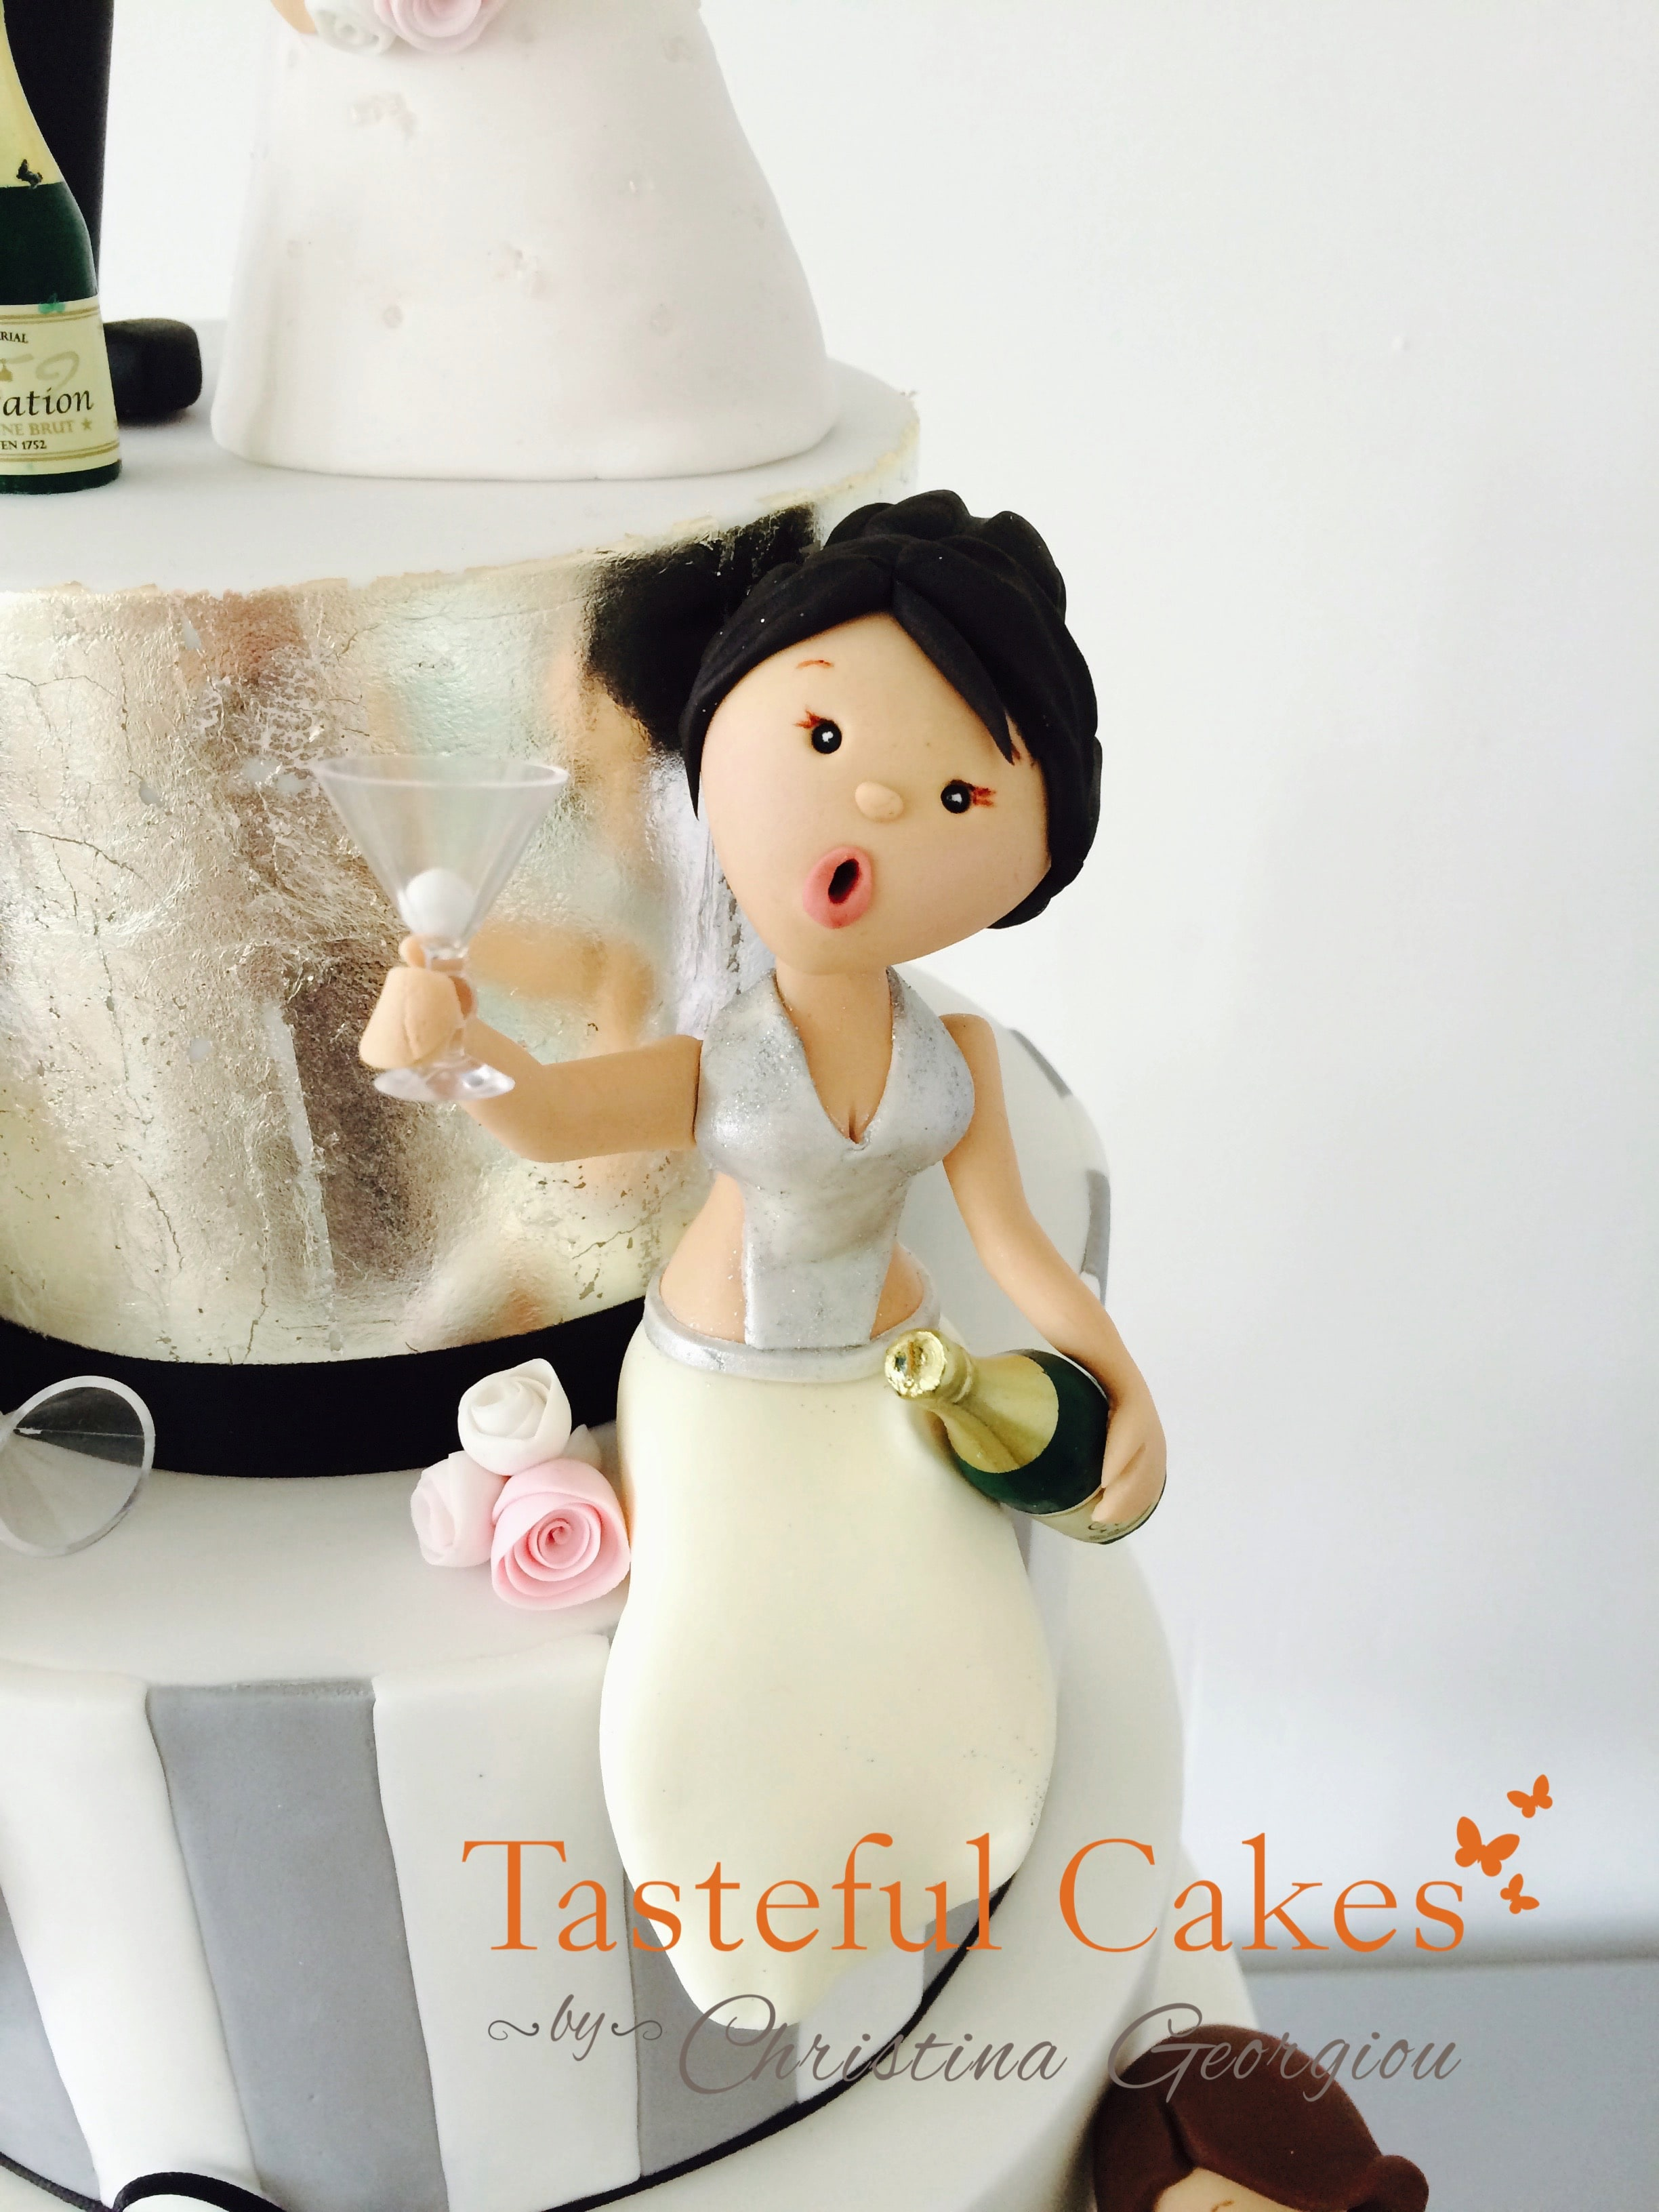 Tasteful Cakes By Christina Georgiou